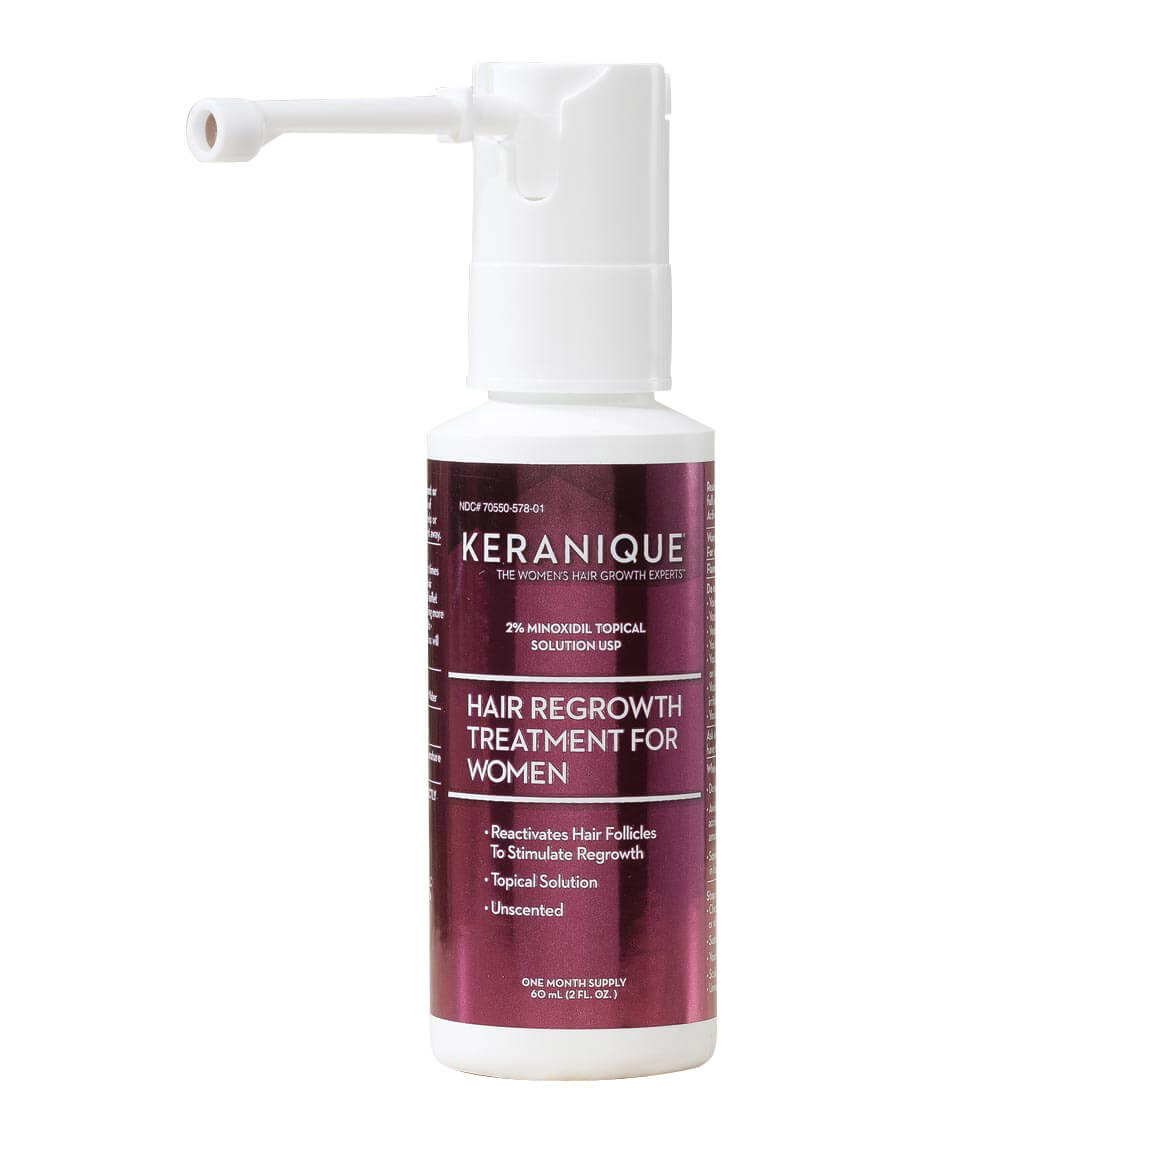 Keranique® Hair Regrowth Treatment for Women